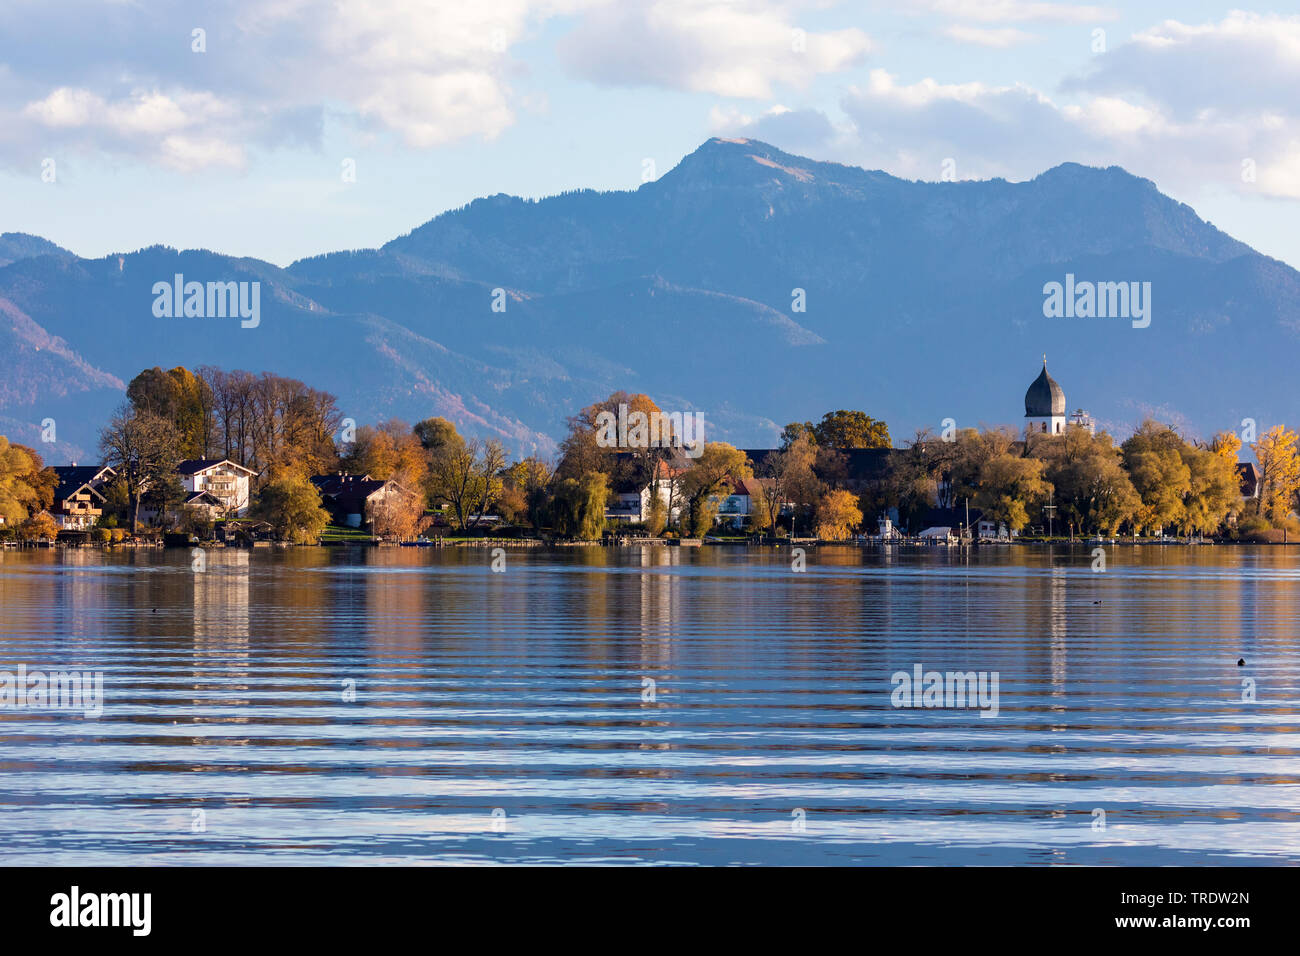 island Frauenchiemsee in front of the Alps in autumn, Germany, Bavaria, Lake Chiemsee Stock Photo